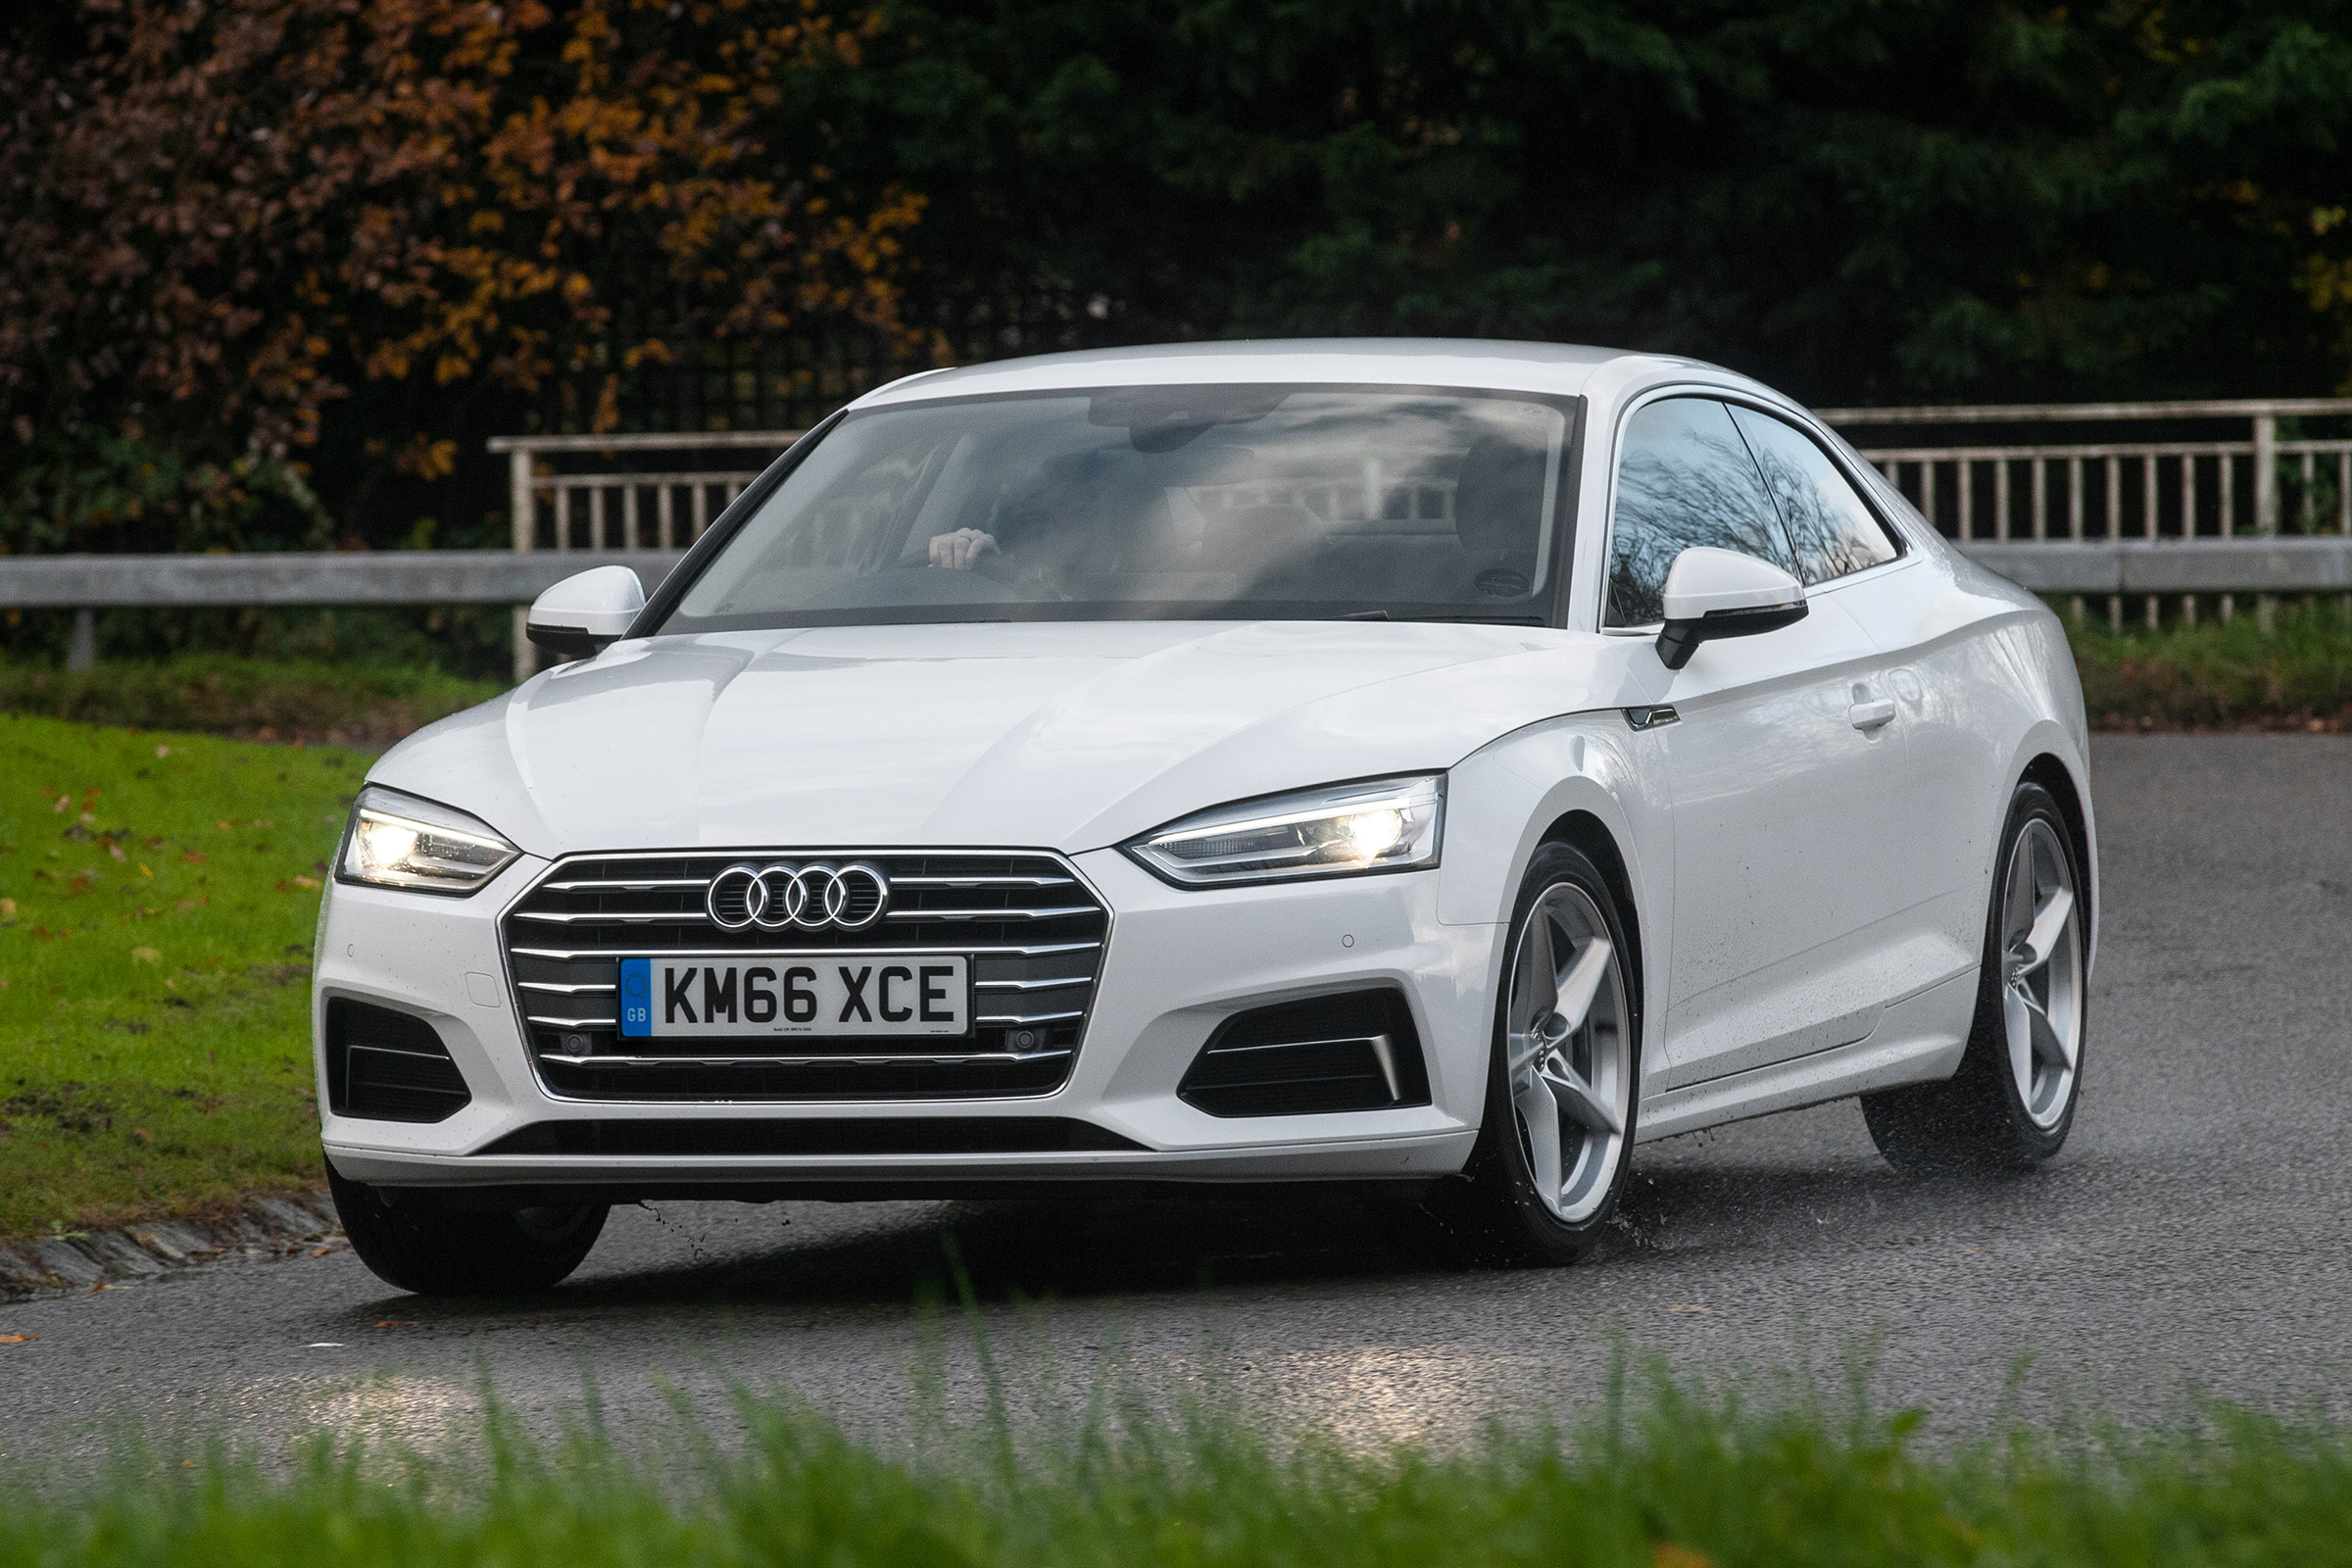 2017 Audi A5 Coupe Exterior White (Photo 7 of 21)